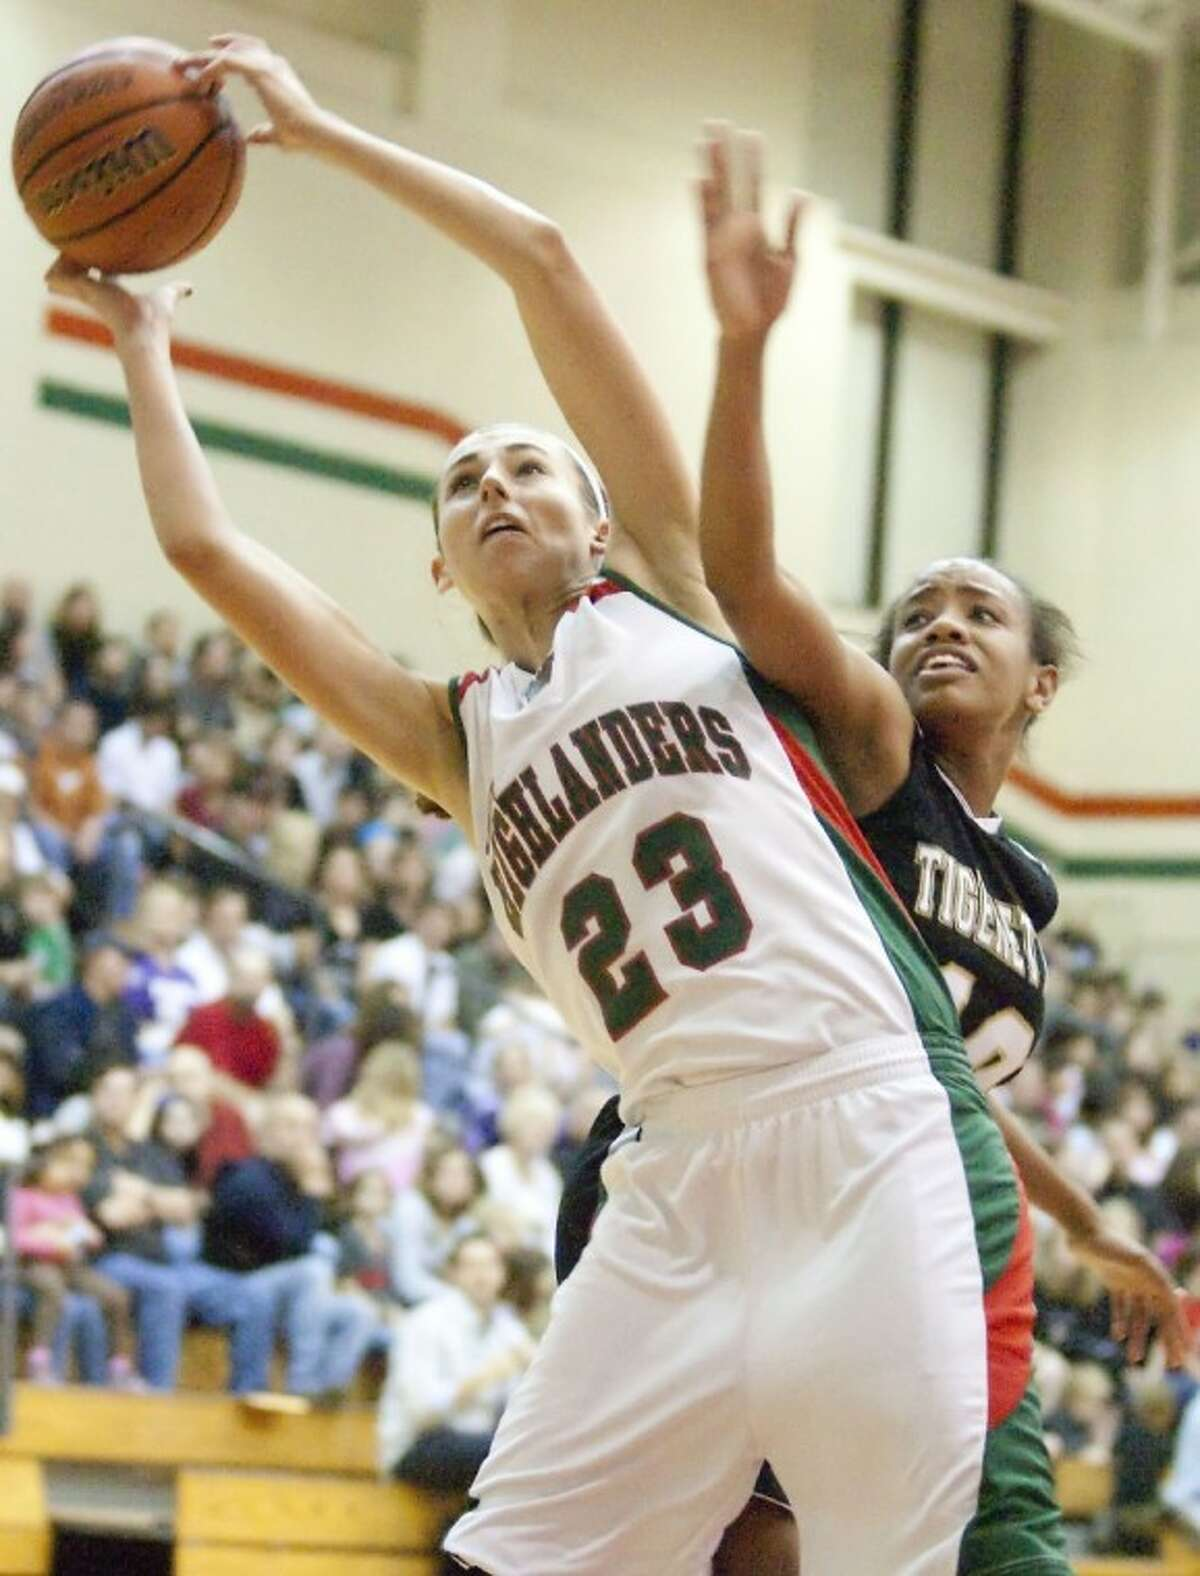 The Woodlands' Anna Strickland hauls in a rebound during a game against Conroe. Strickland was named The Courier's 2011-2012 All-Montgomery County Player of the Year.